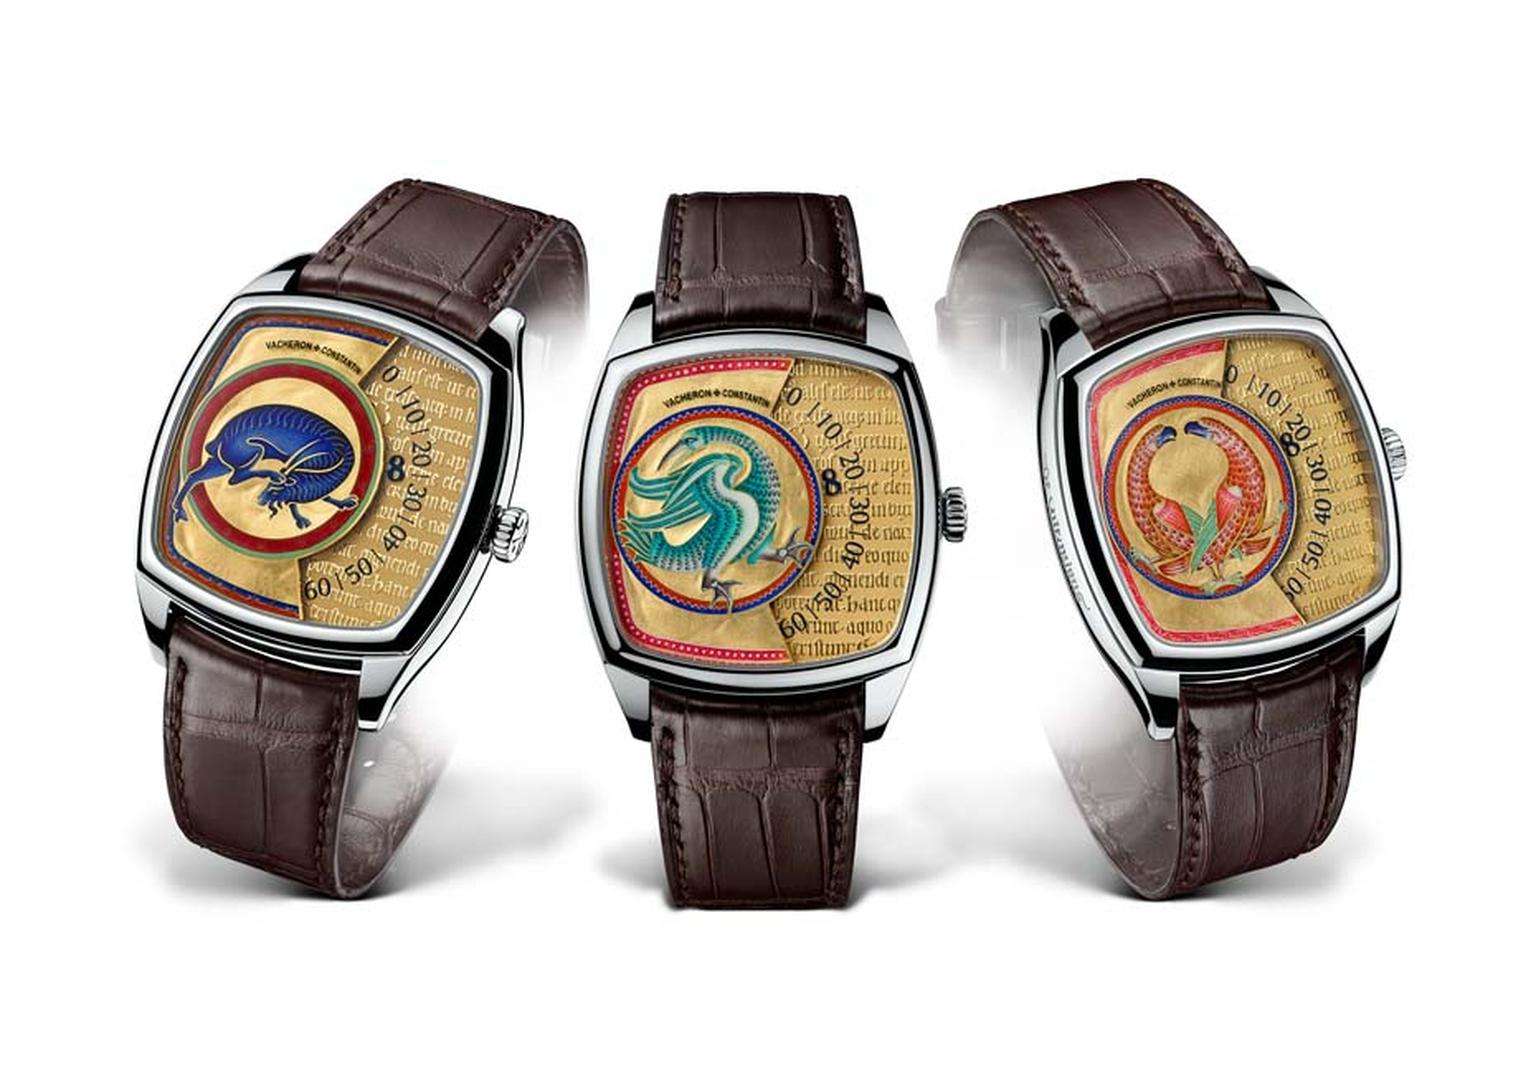 Vacheron Constantin has recreated the illuminating beauty of the Aberdeen Bestiary with its Métiers d'Art Savoirs Enluminés collection of men's watches featuring three different beasts from the historical manuscript. Each model is a limited edition of jus